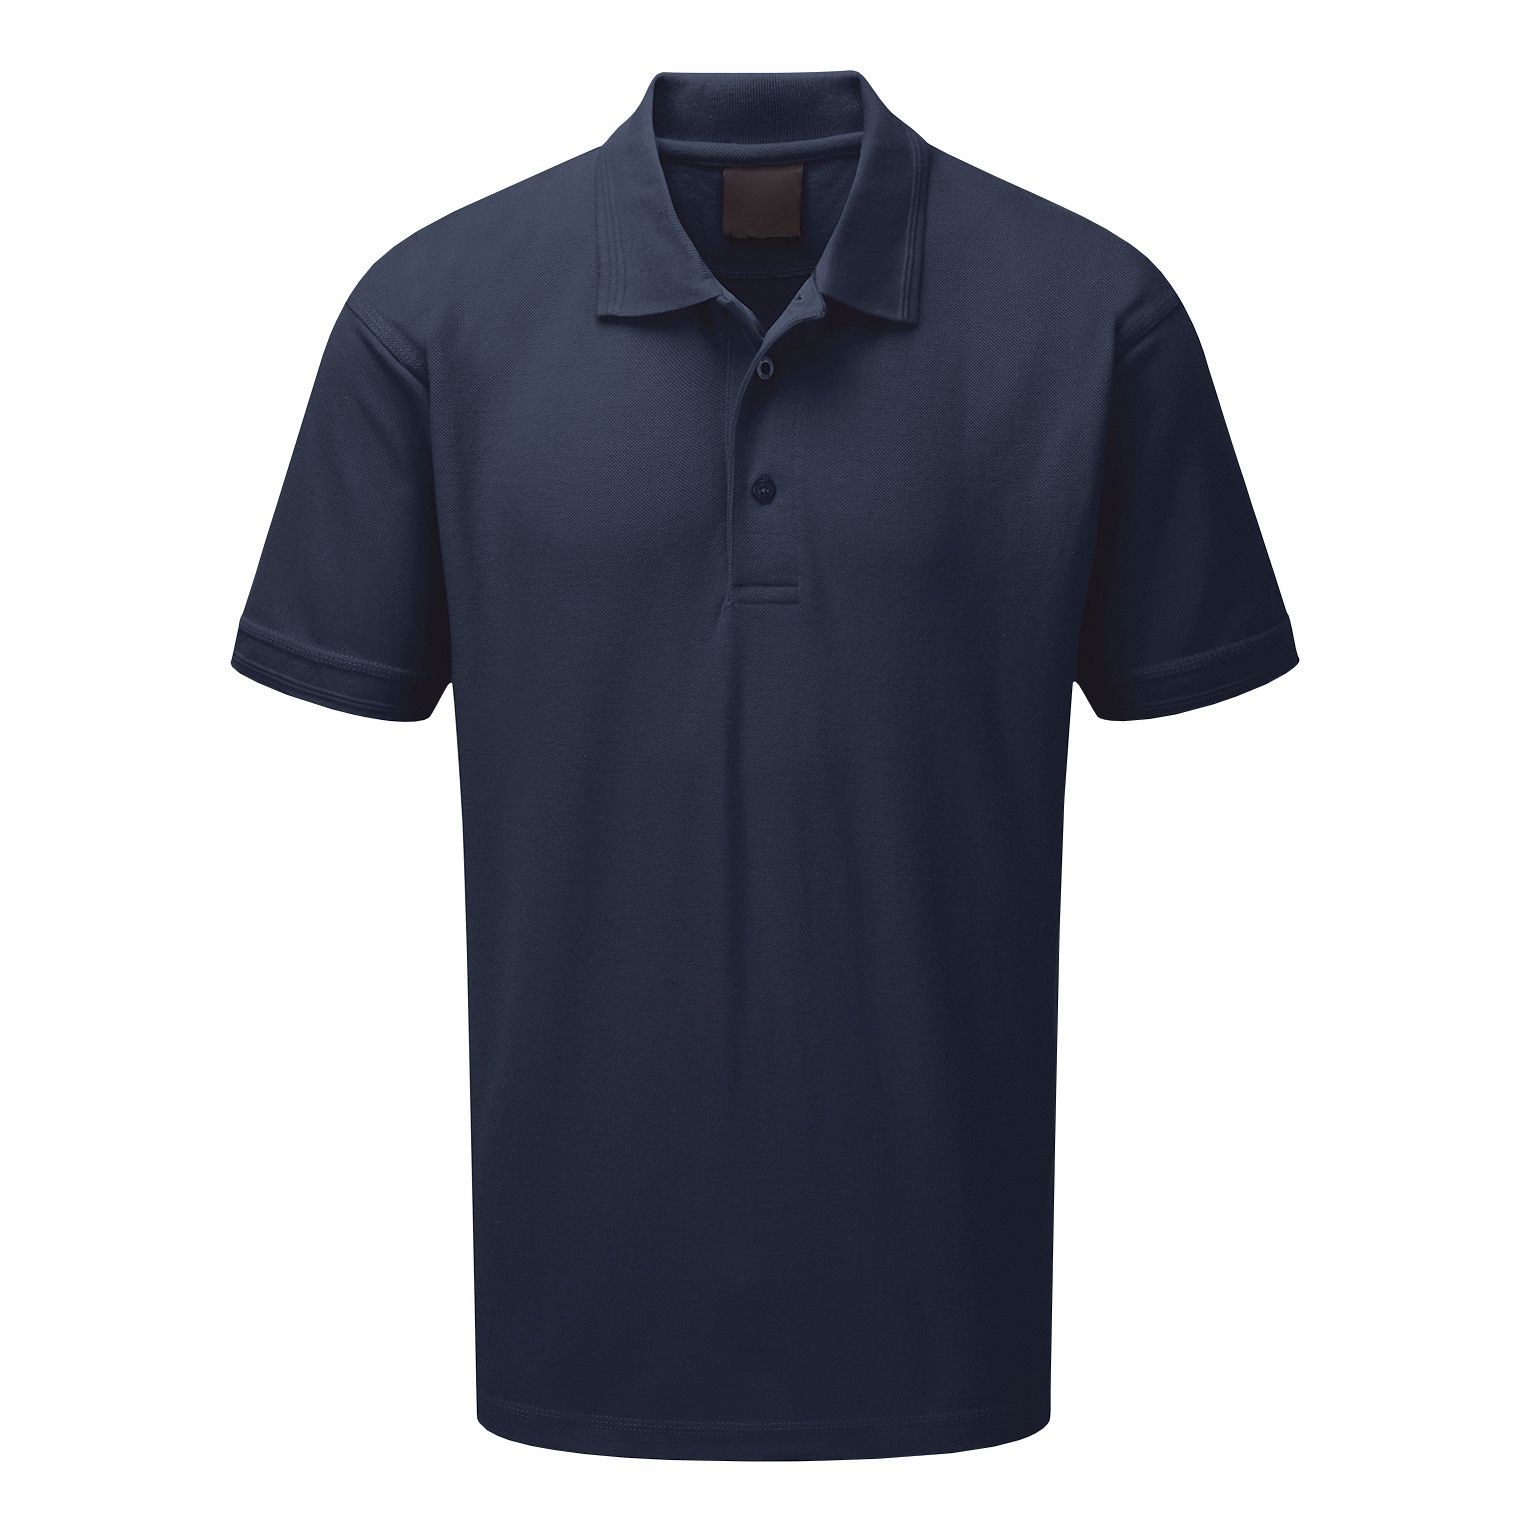 Polo Shirt Classic Polycotton XXXXLarge Navy 1-3 Days Lead Time